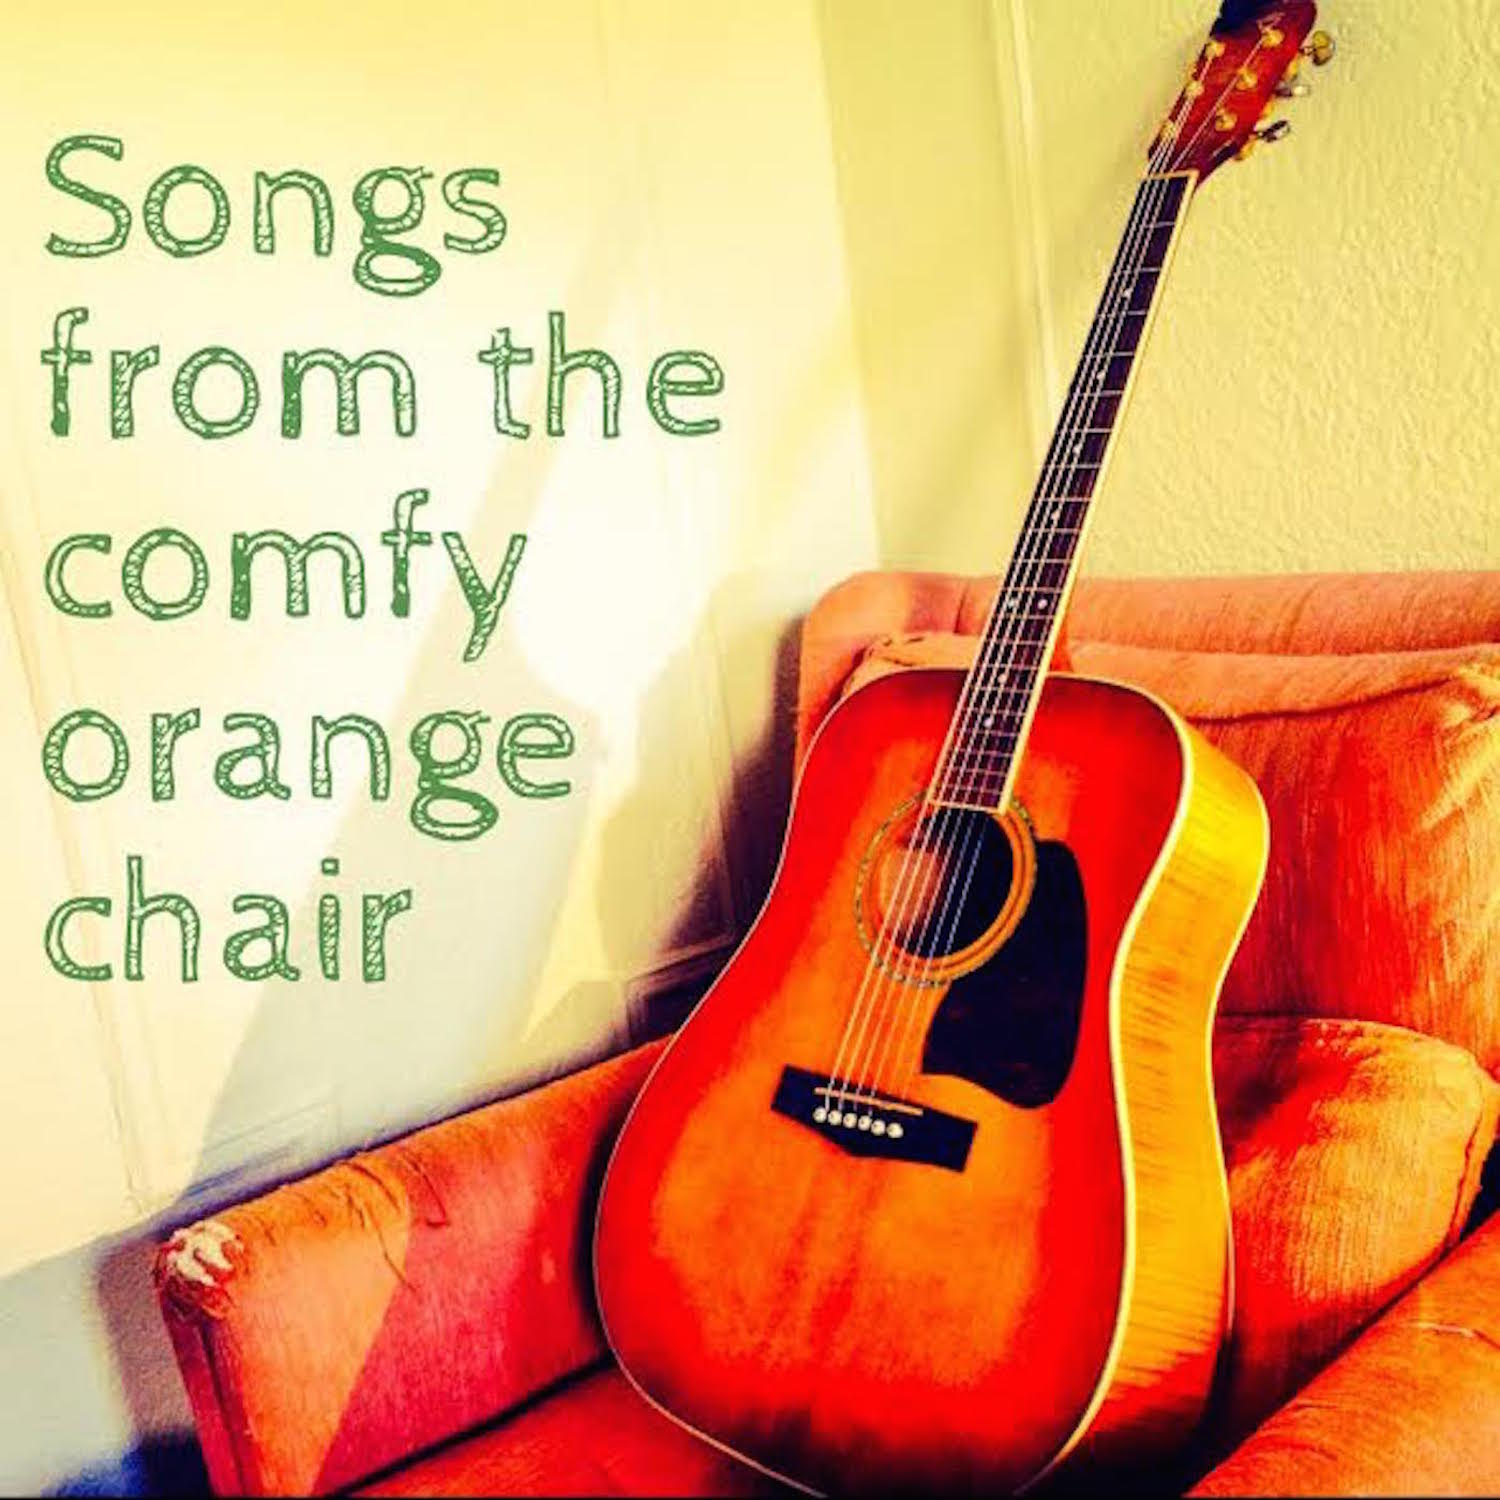 Songs from the comfy orange chair